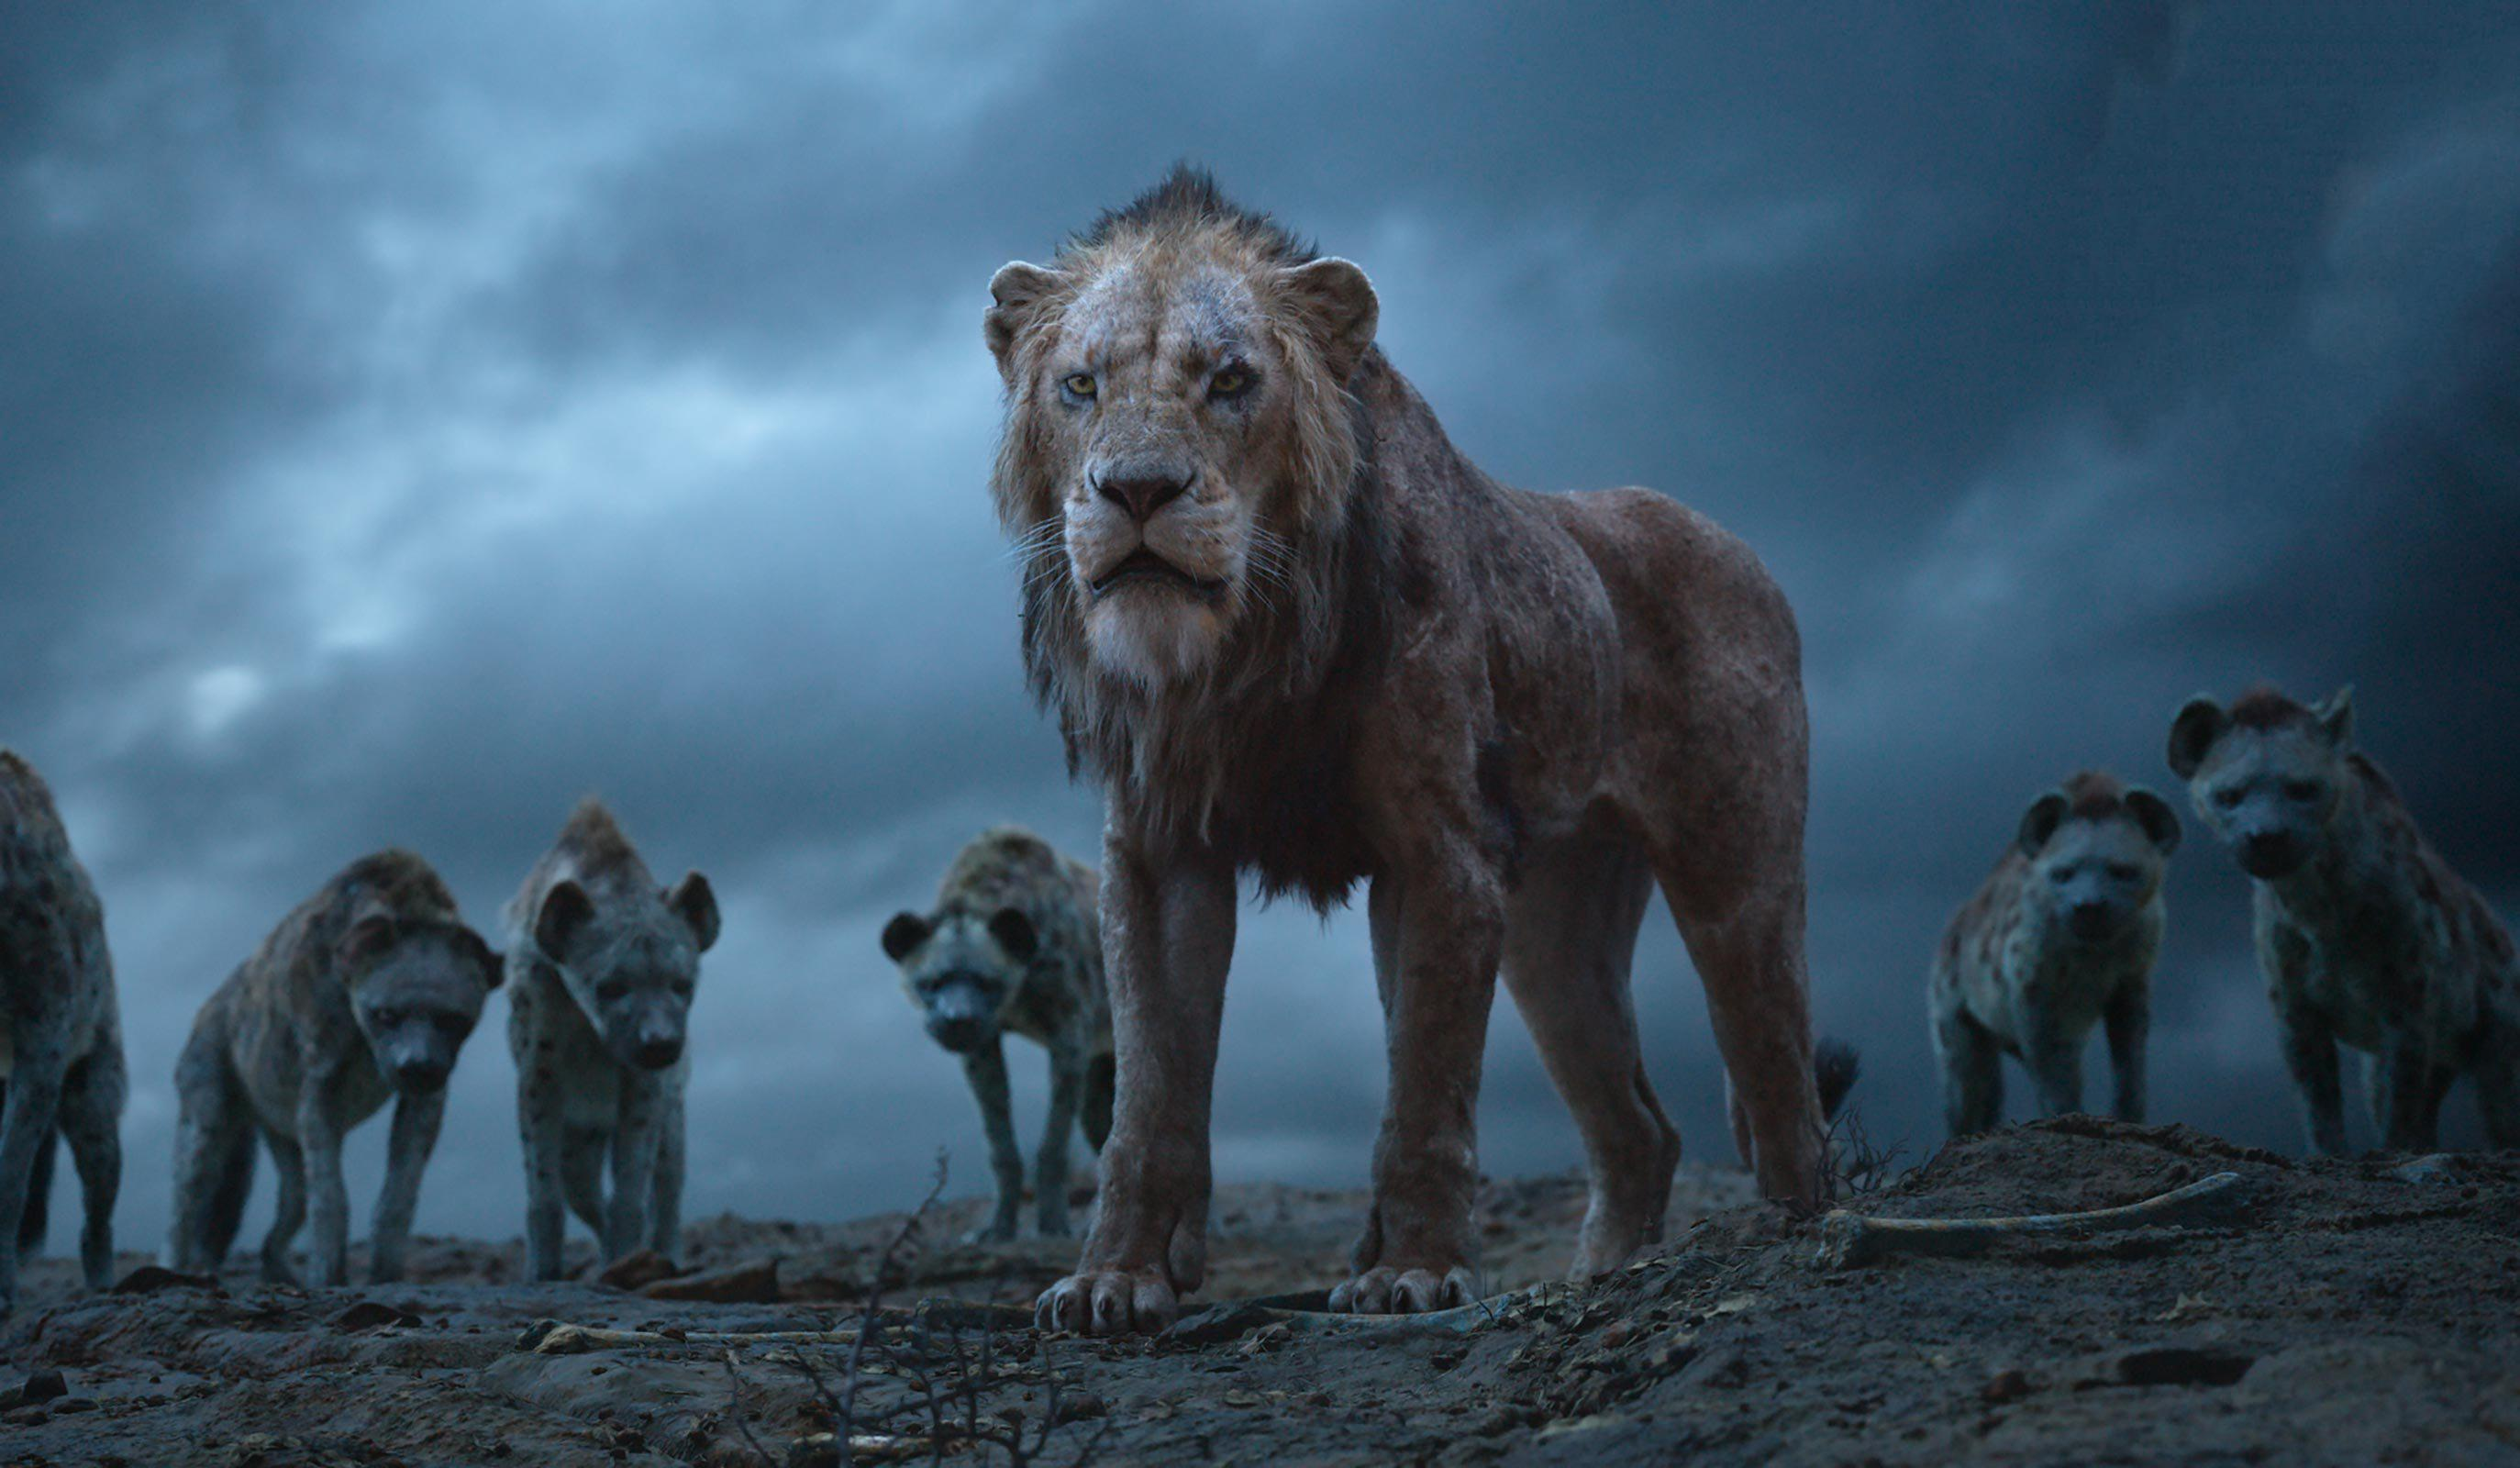 Scar The Lion King 2019, HD Movies, 4k Wallpapers, Image